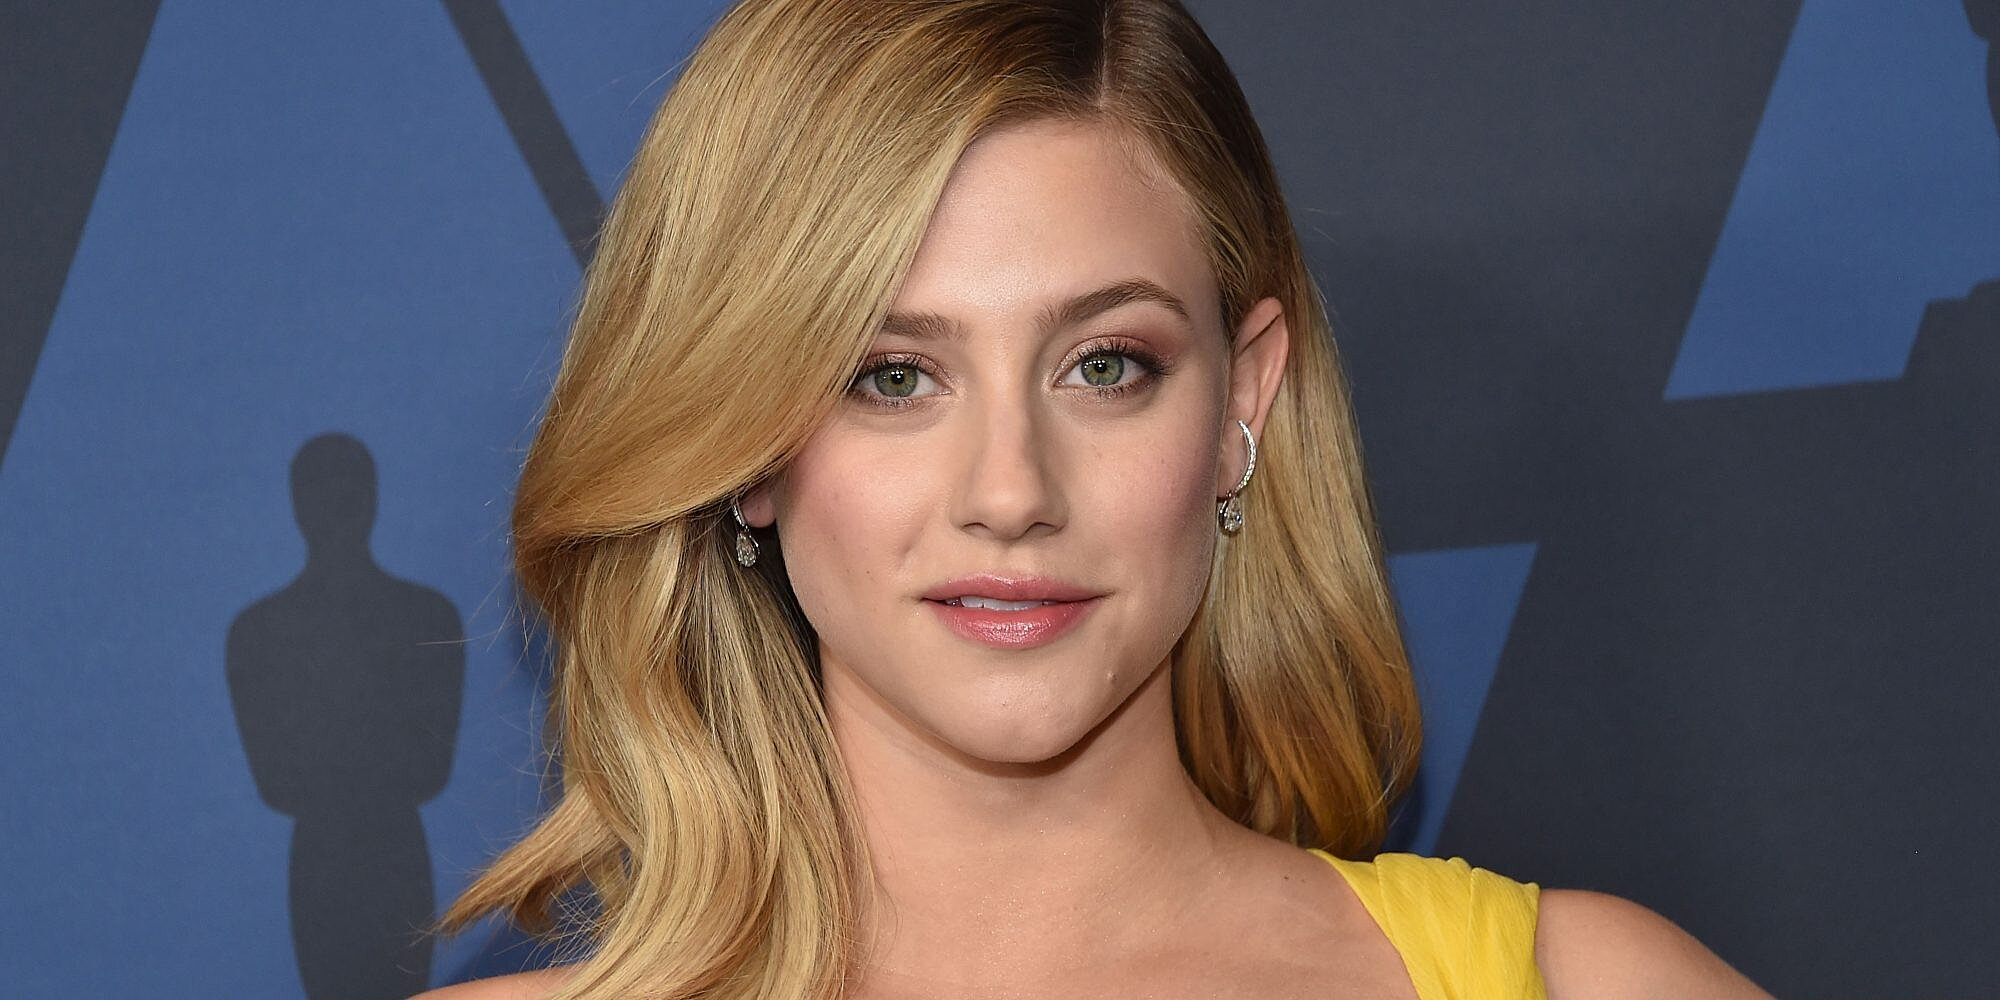 """Lili Reinhart Candidly Shared How """"Exhausting"""" Her Depression Can Be"""